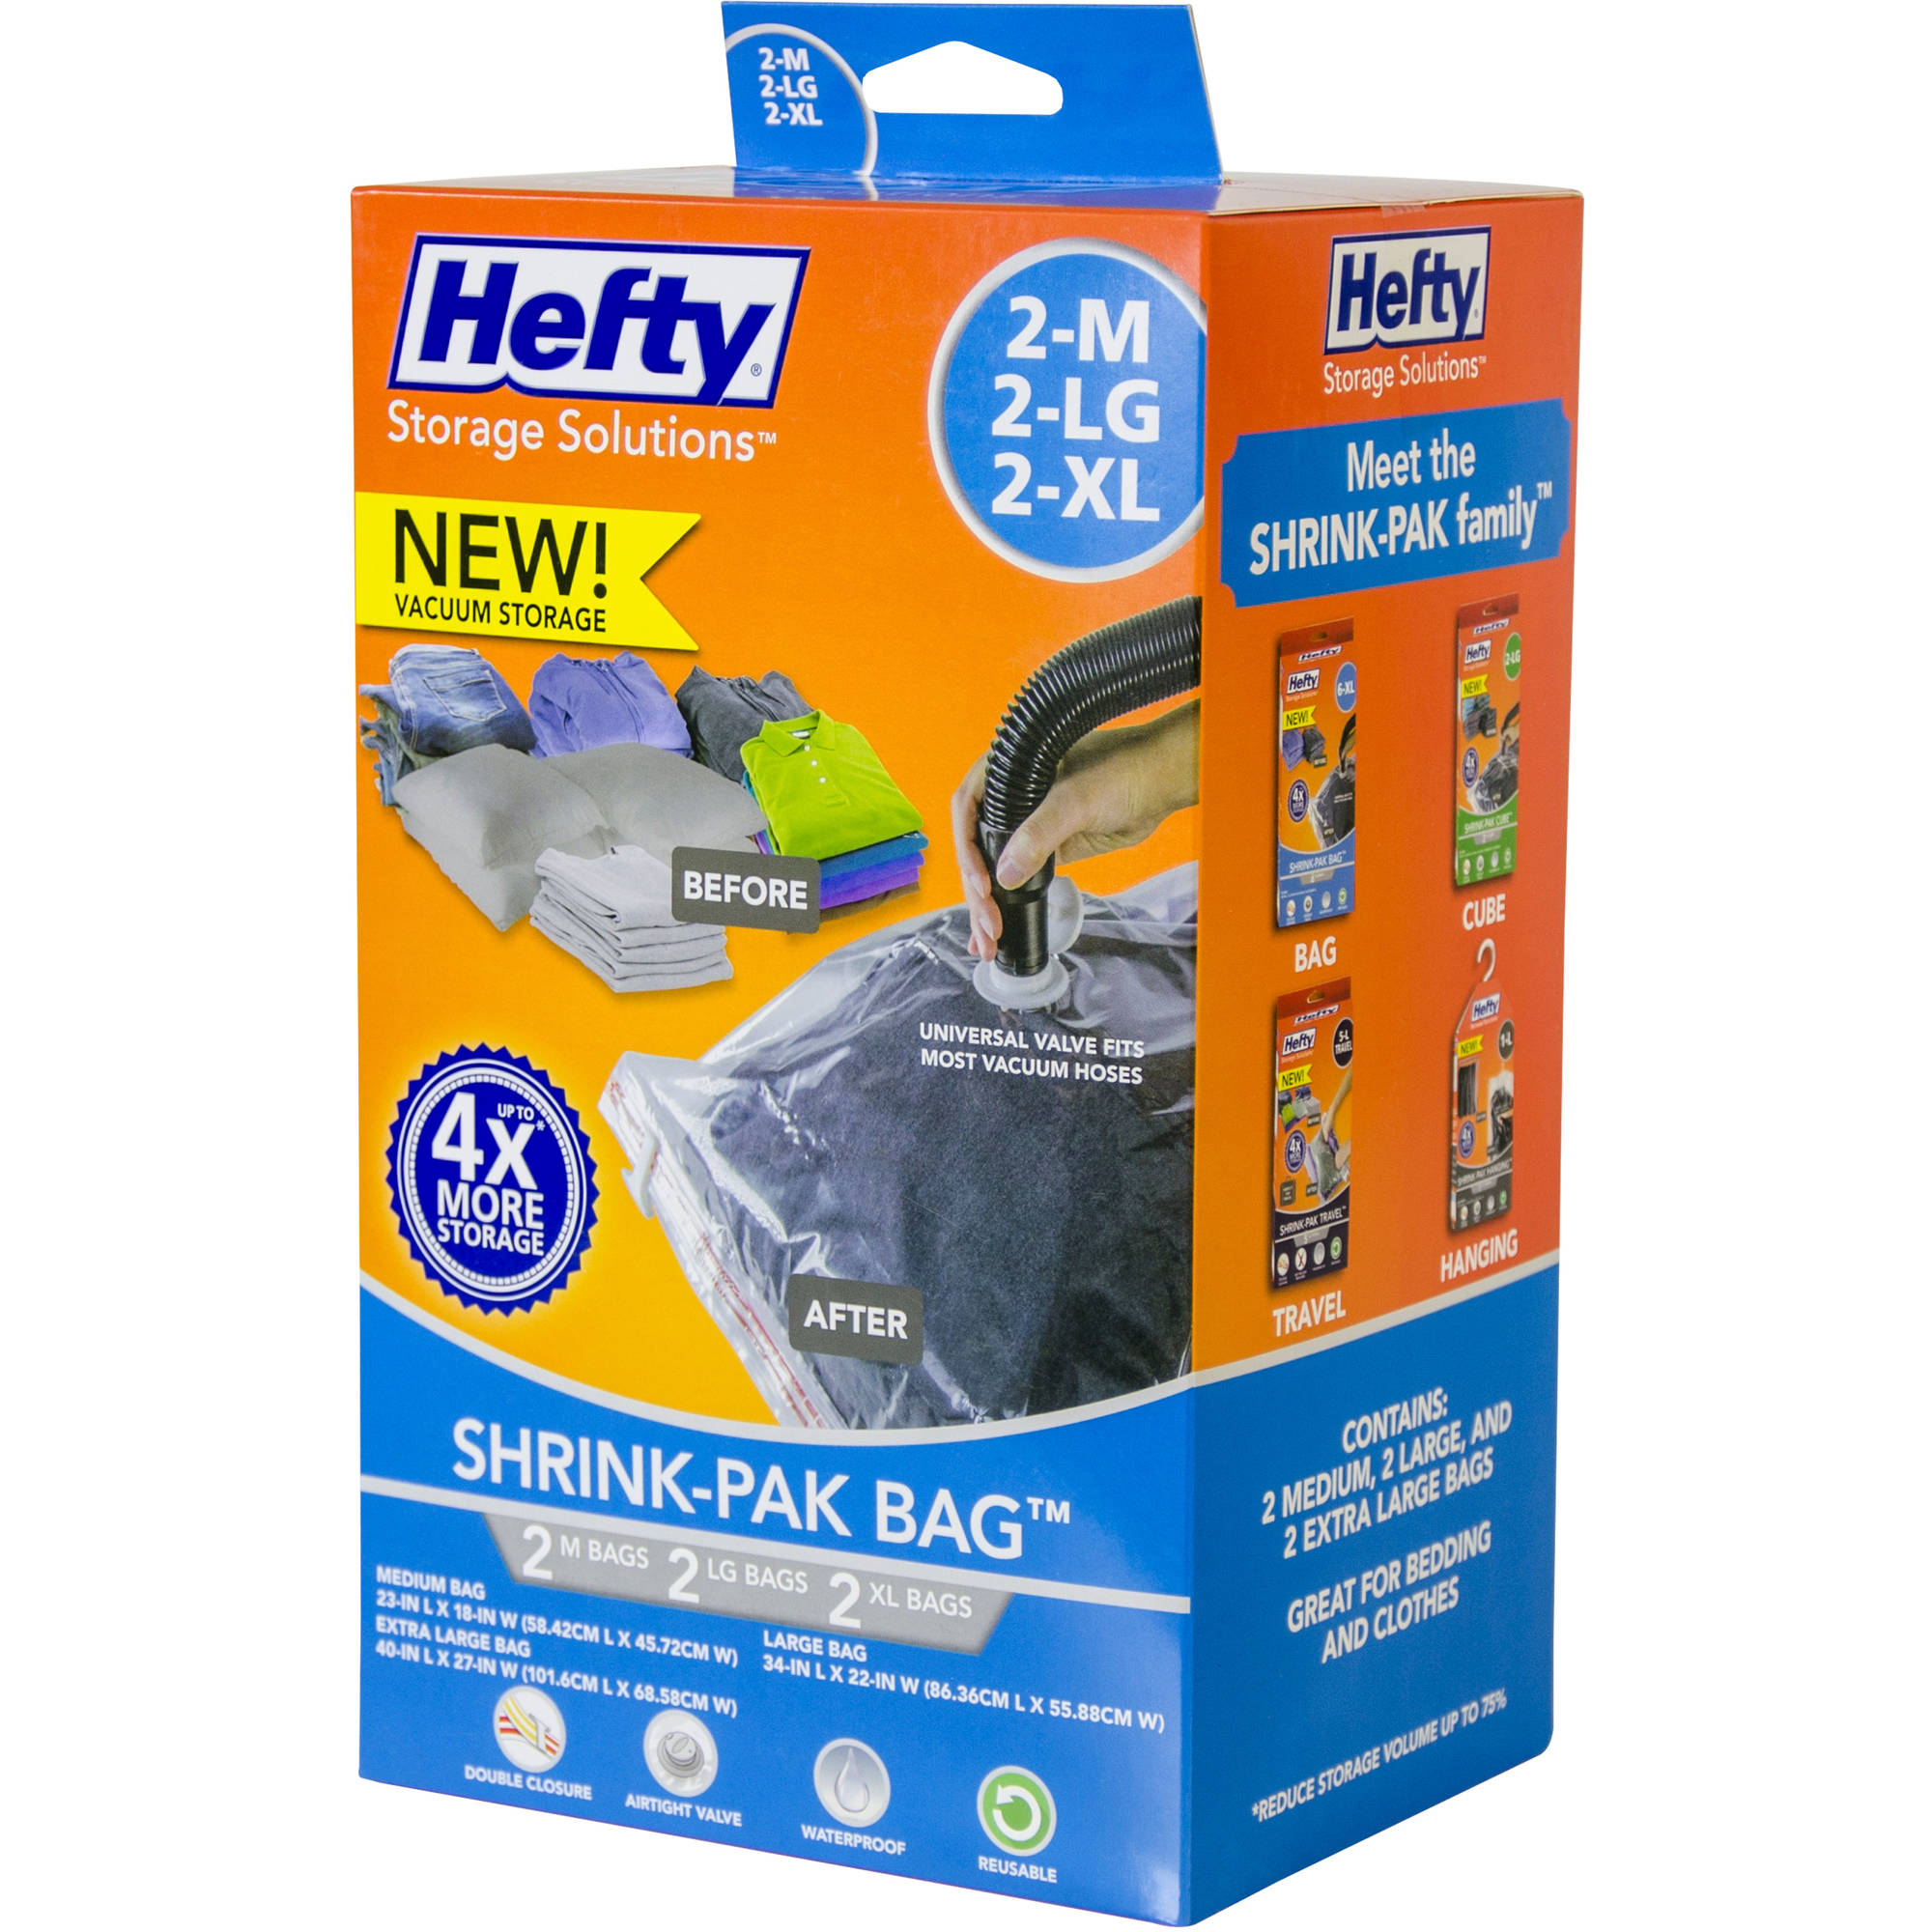 Hefty Shrink-Pak Vacuum Seal Bags, 2 Medium, 2 Large and 2 X-Large Bags